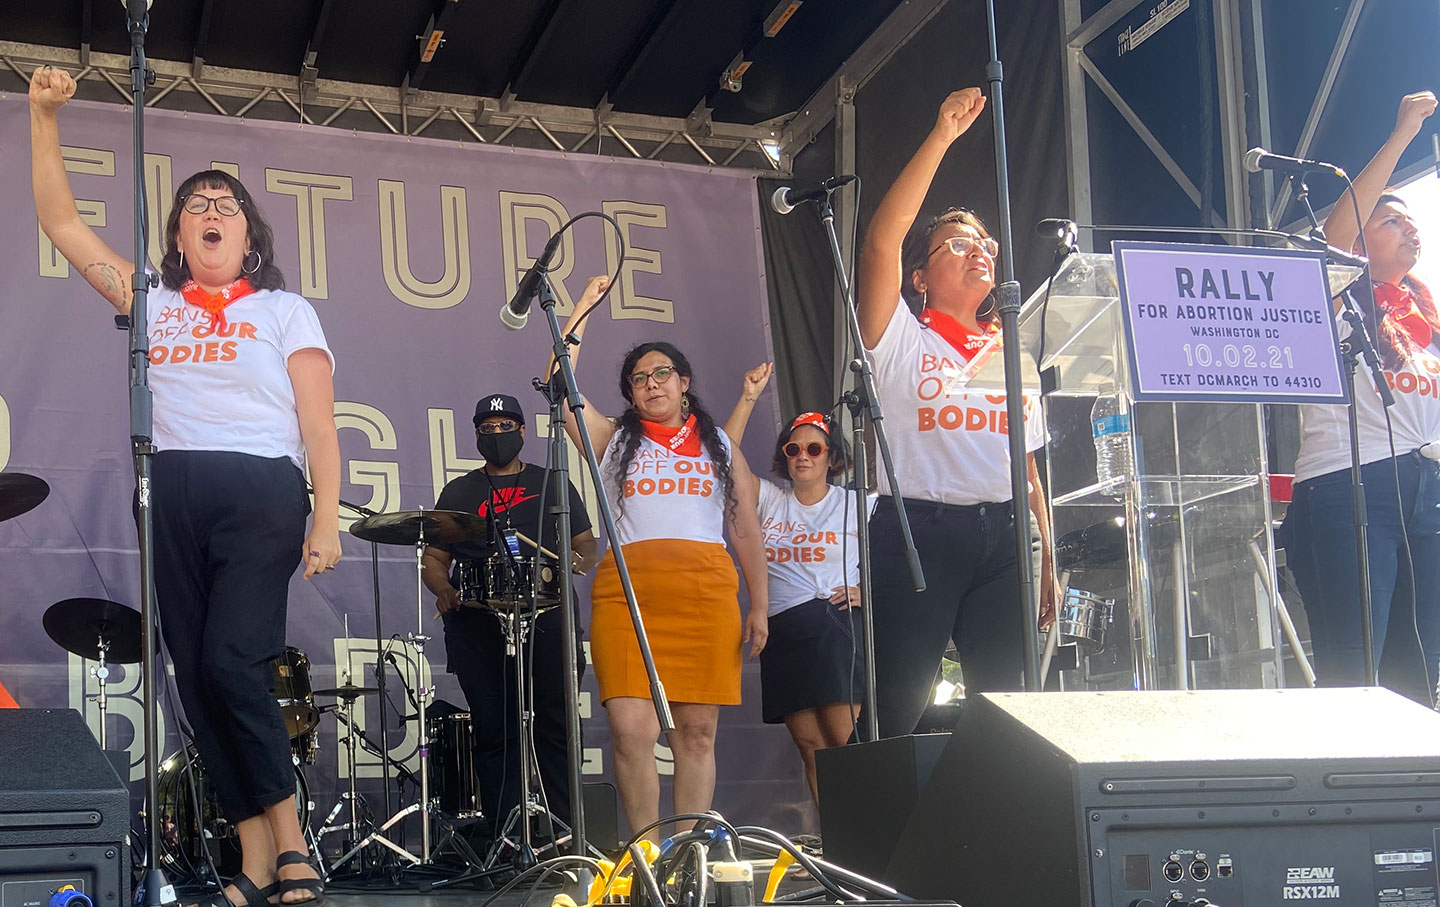 At the March for Abortion Rights, a New Generation of Activists Takes Center Stage